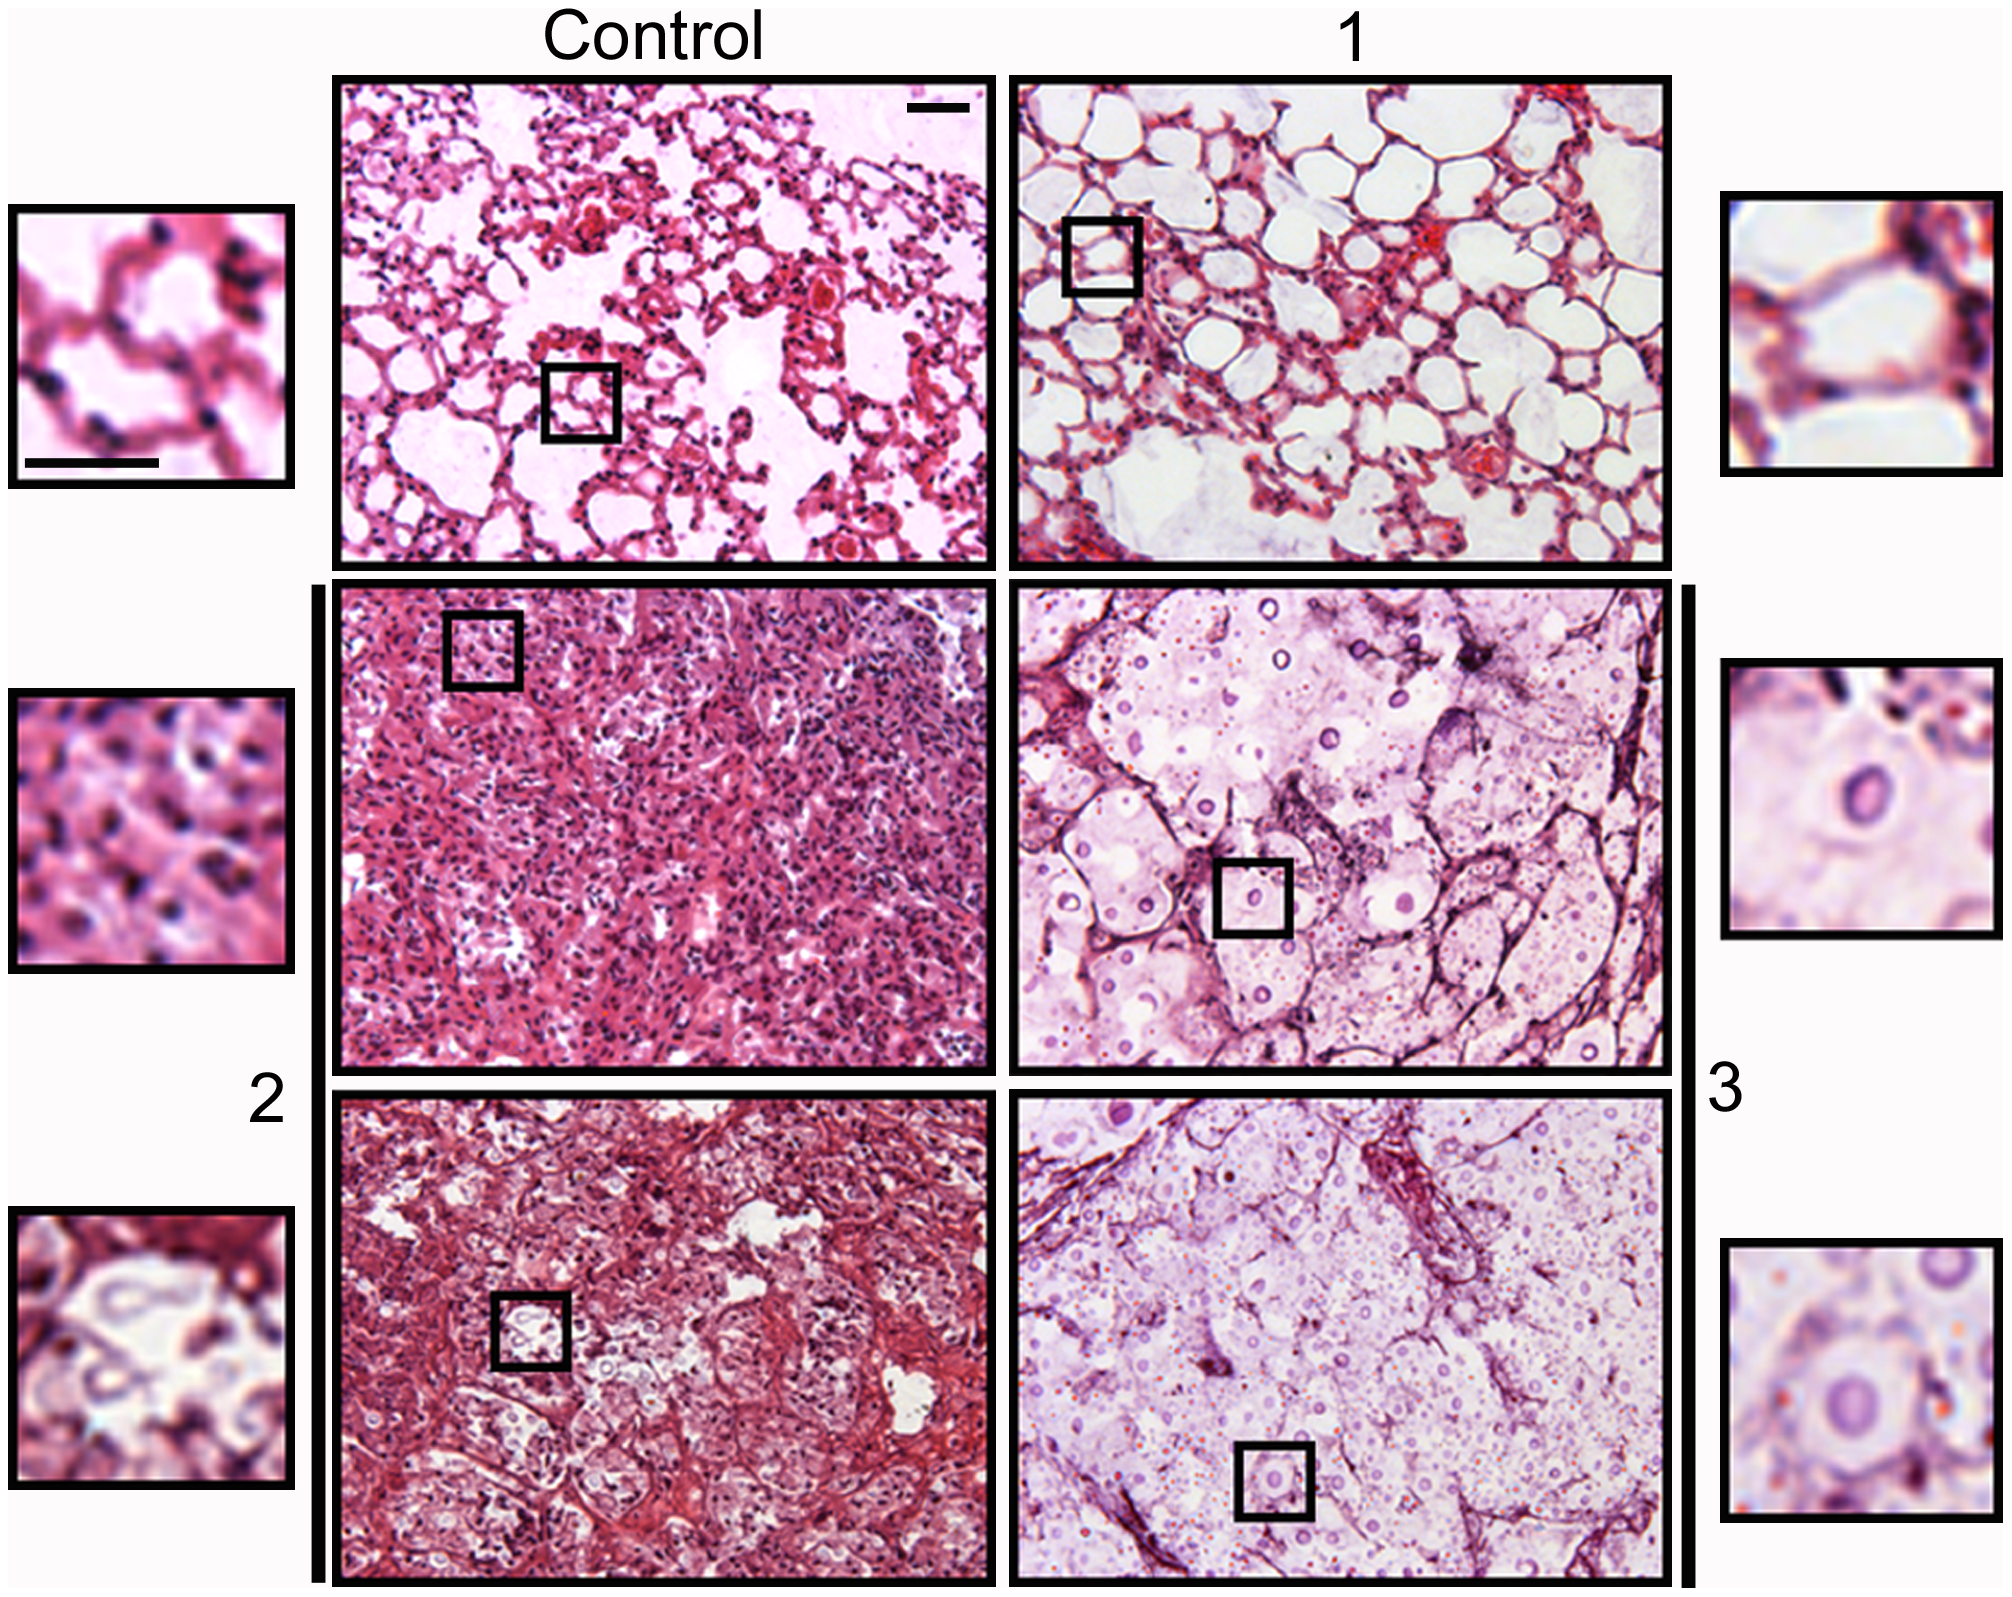 Histological sections of mice infected with different <i>C. neoformans inocula</i>.